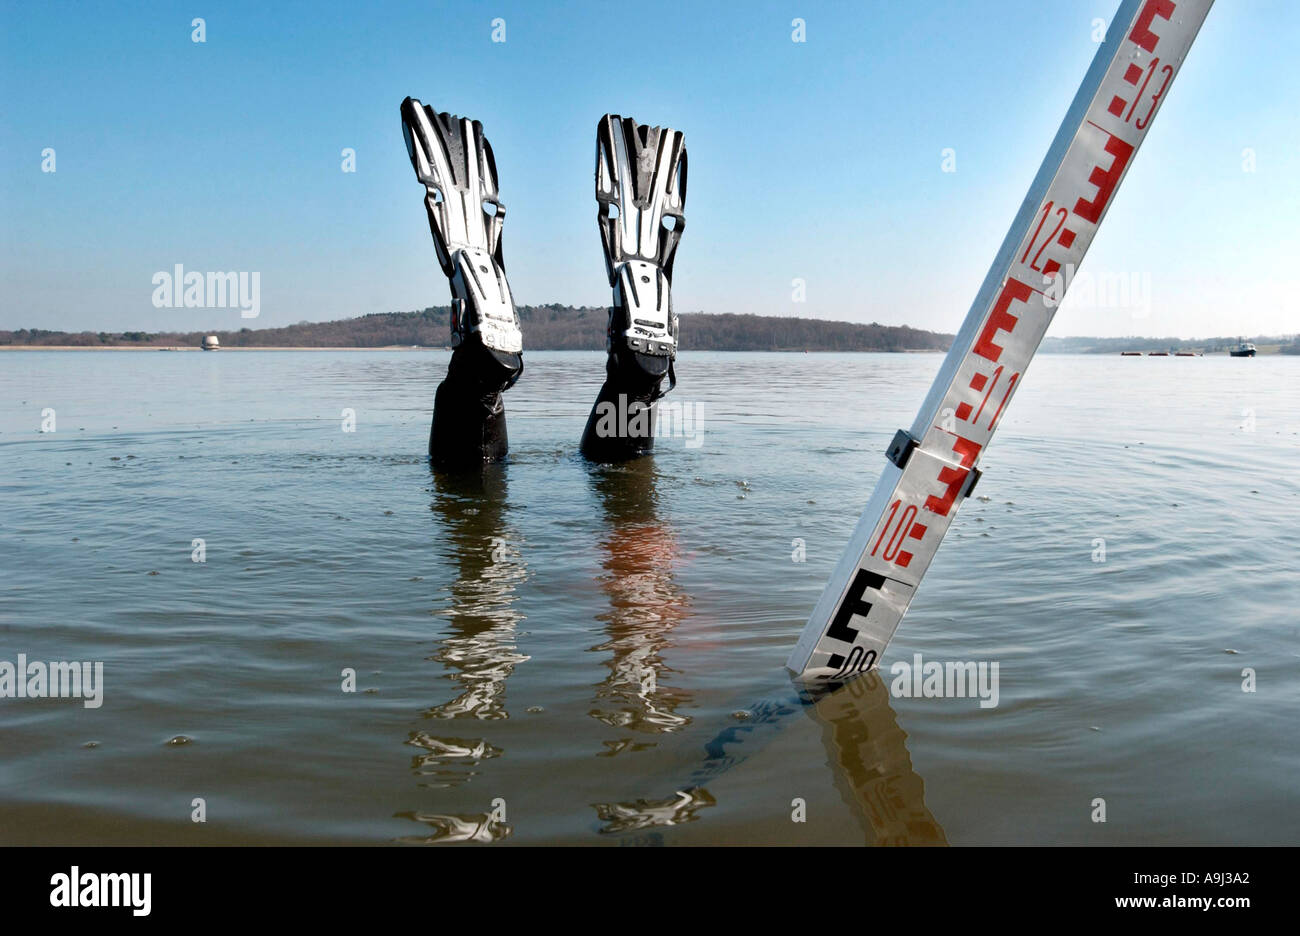 Diver Paul Jackman uses a depth rod to measure the capacity of a reservoir where water levels are low because of a dry summer. - Stock Image